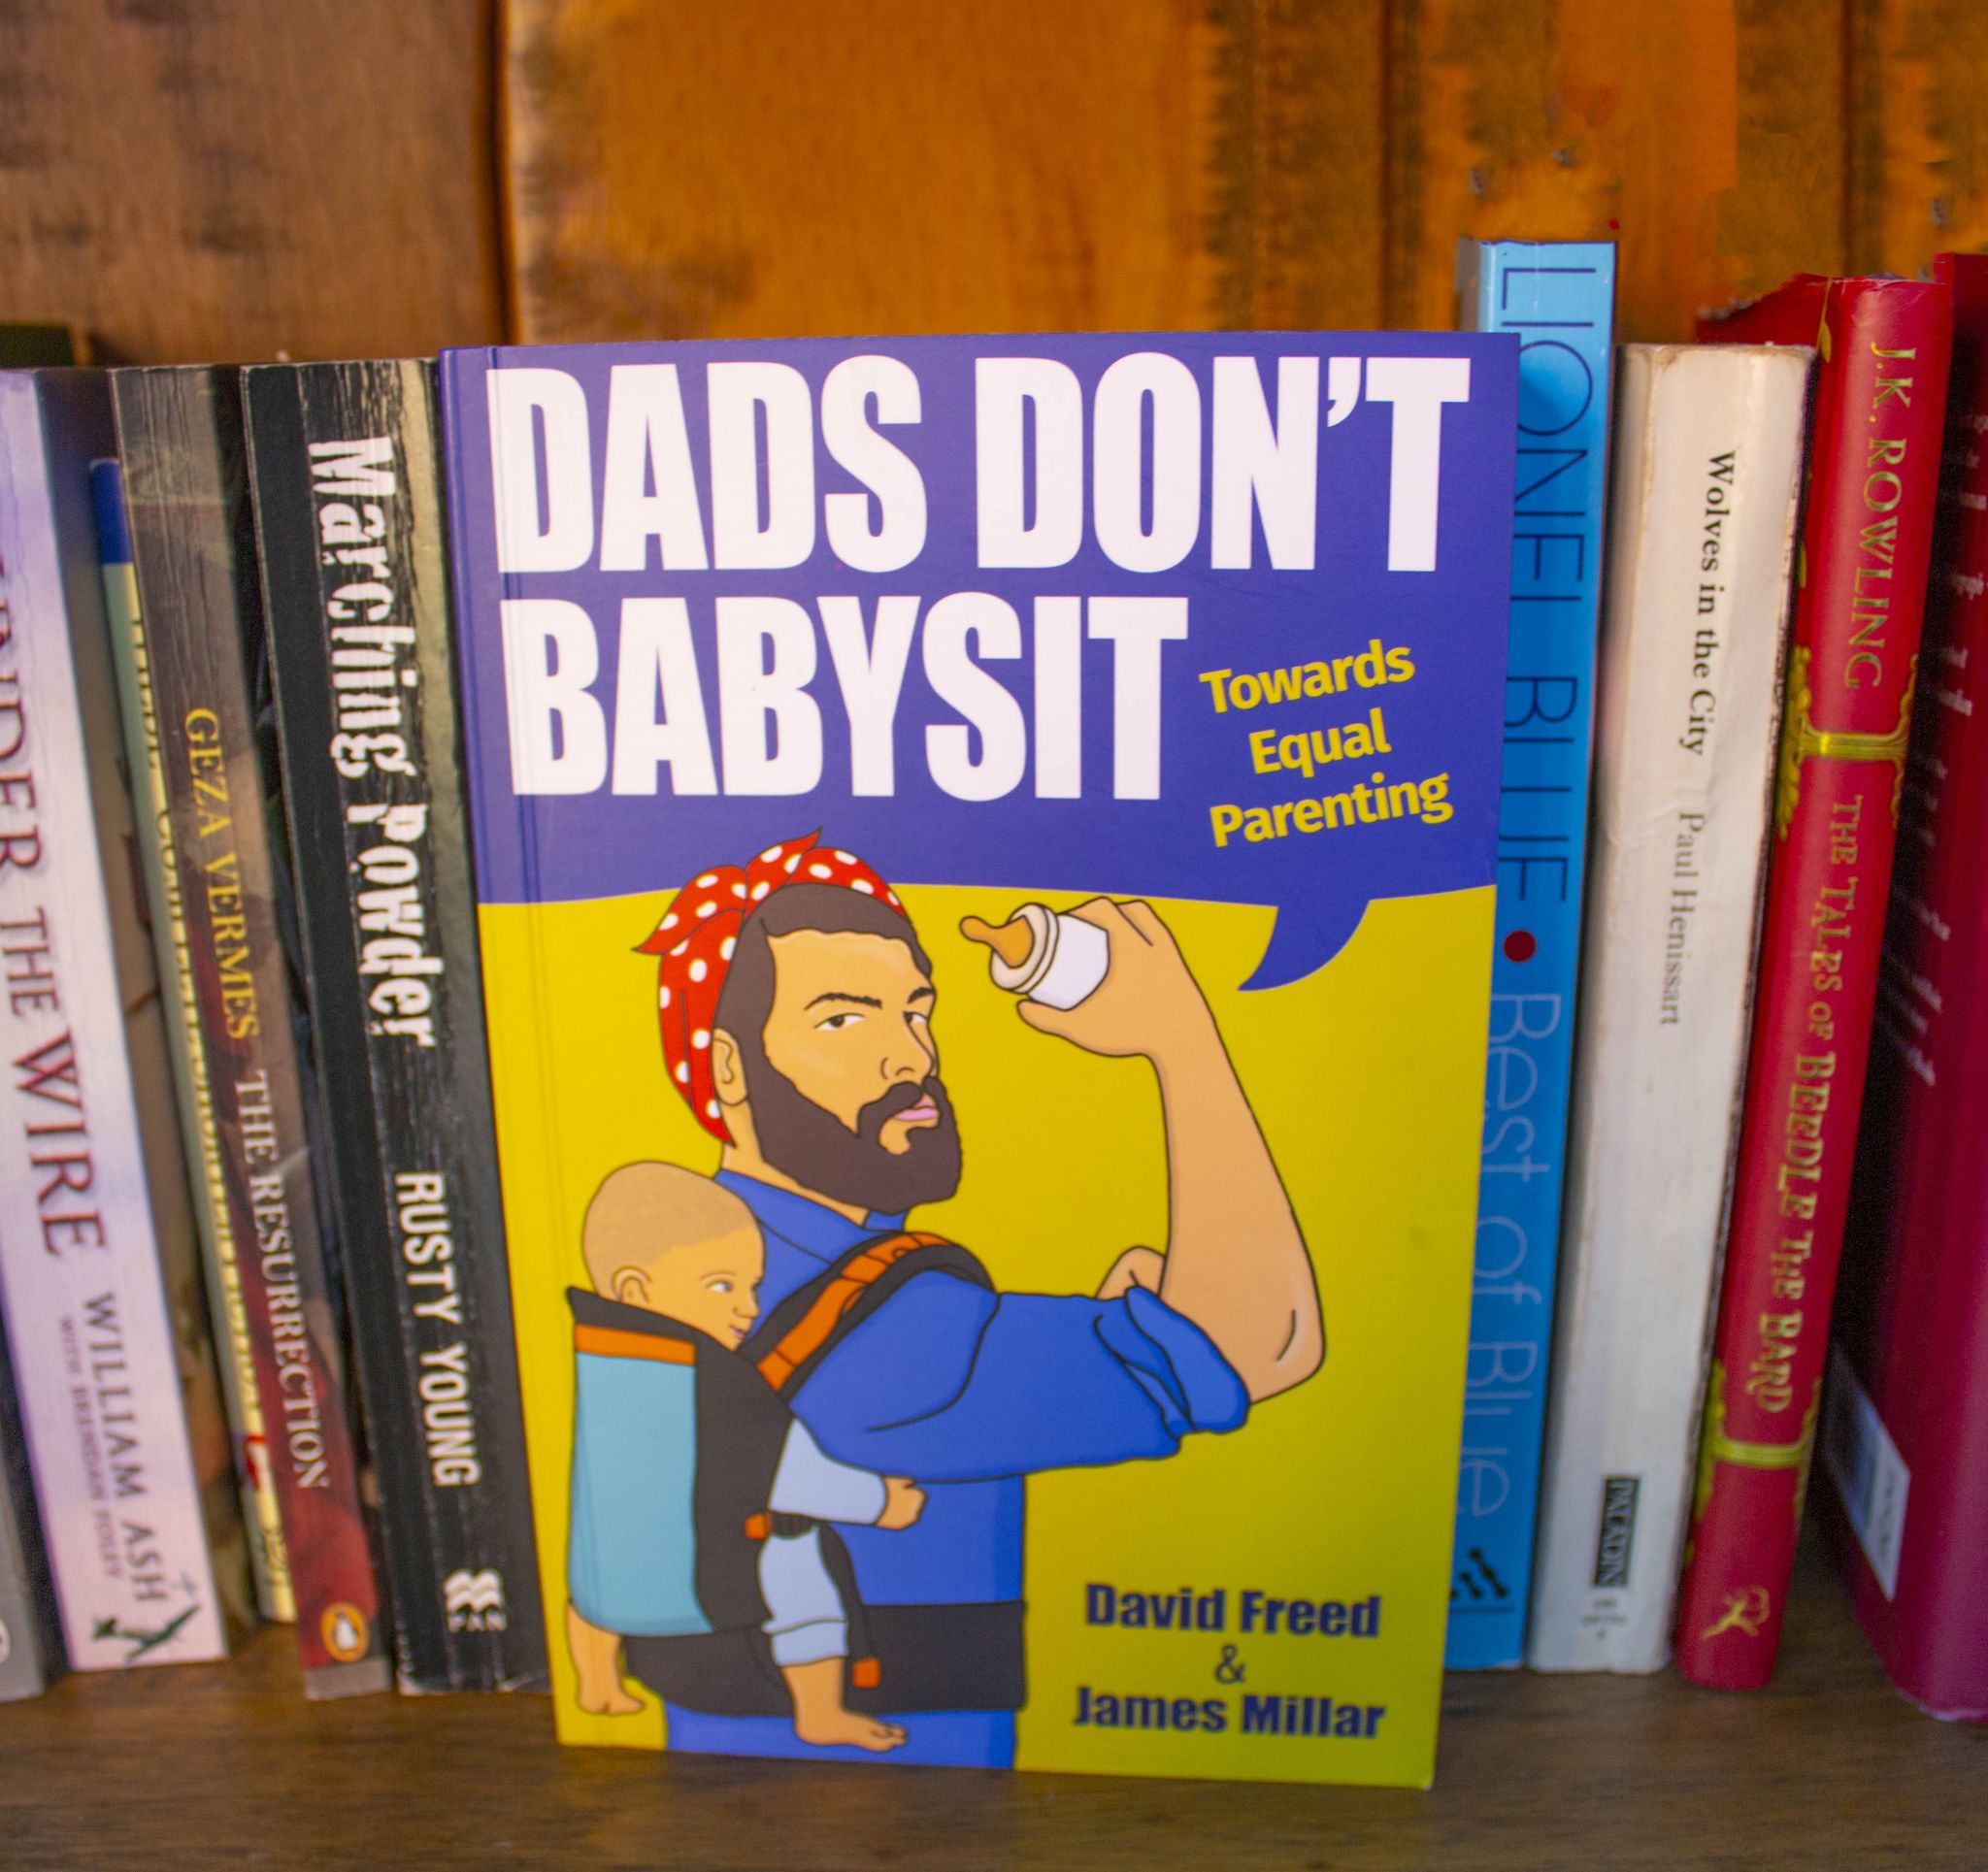 Dads Don't Babysit, Towards Equal Parenting: the book that almost never was